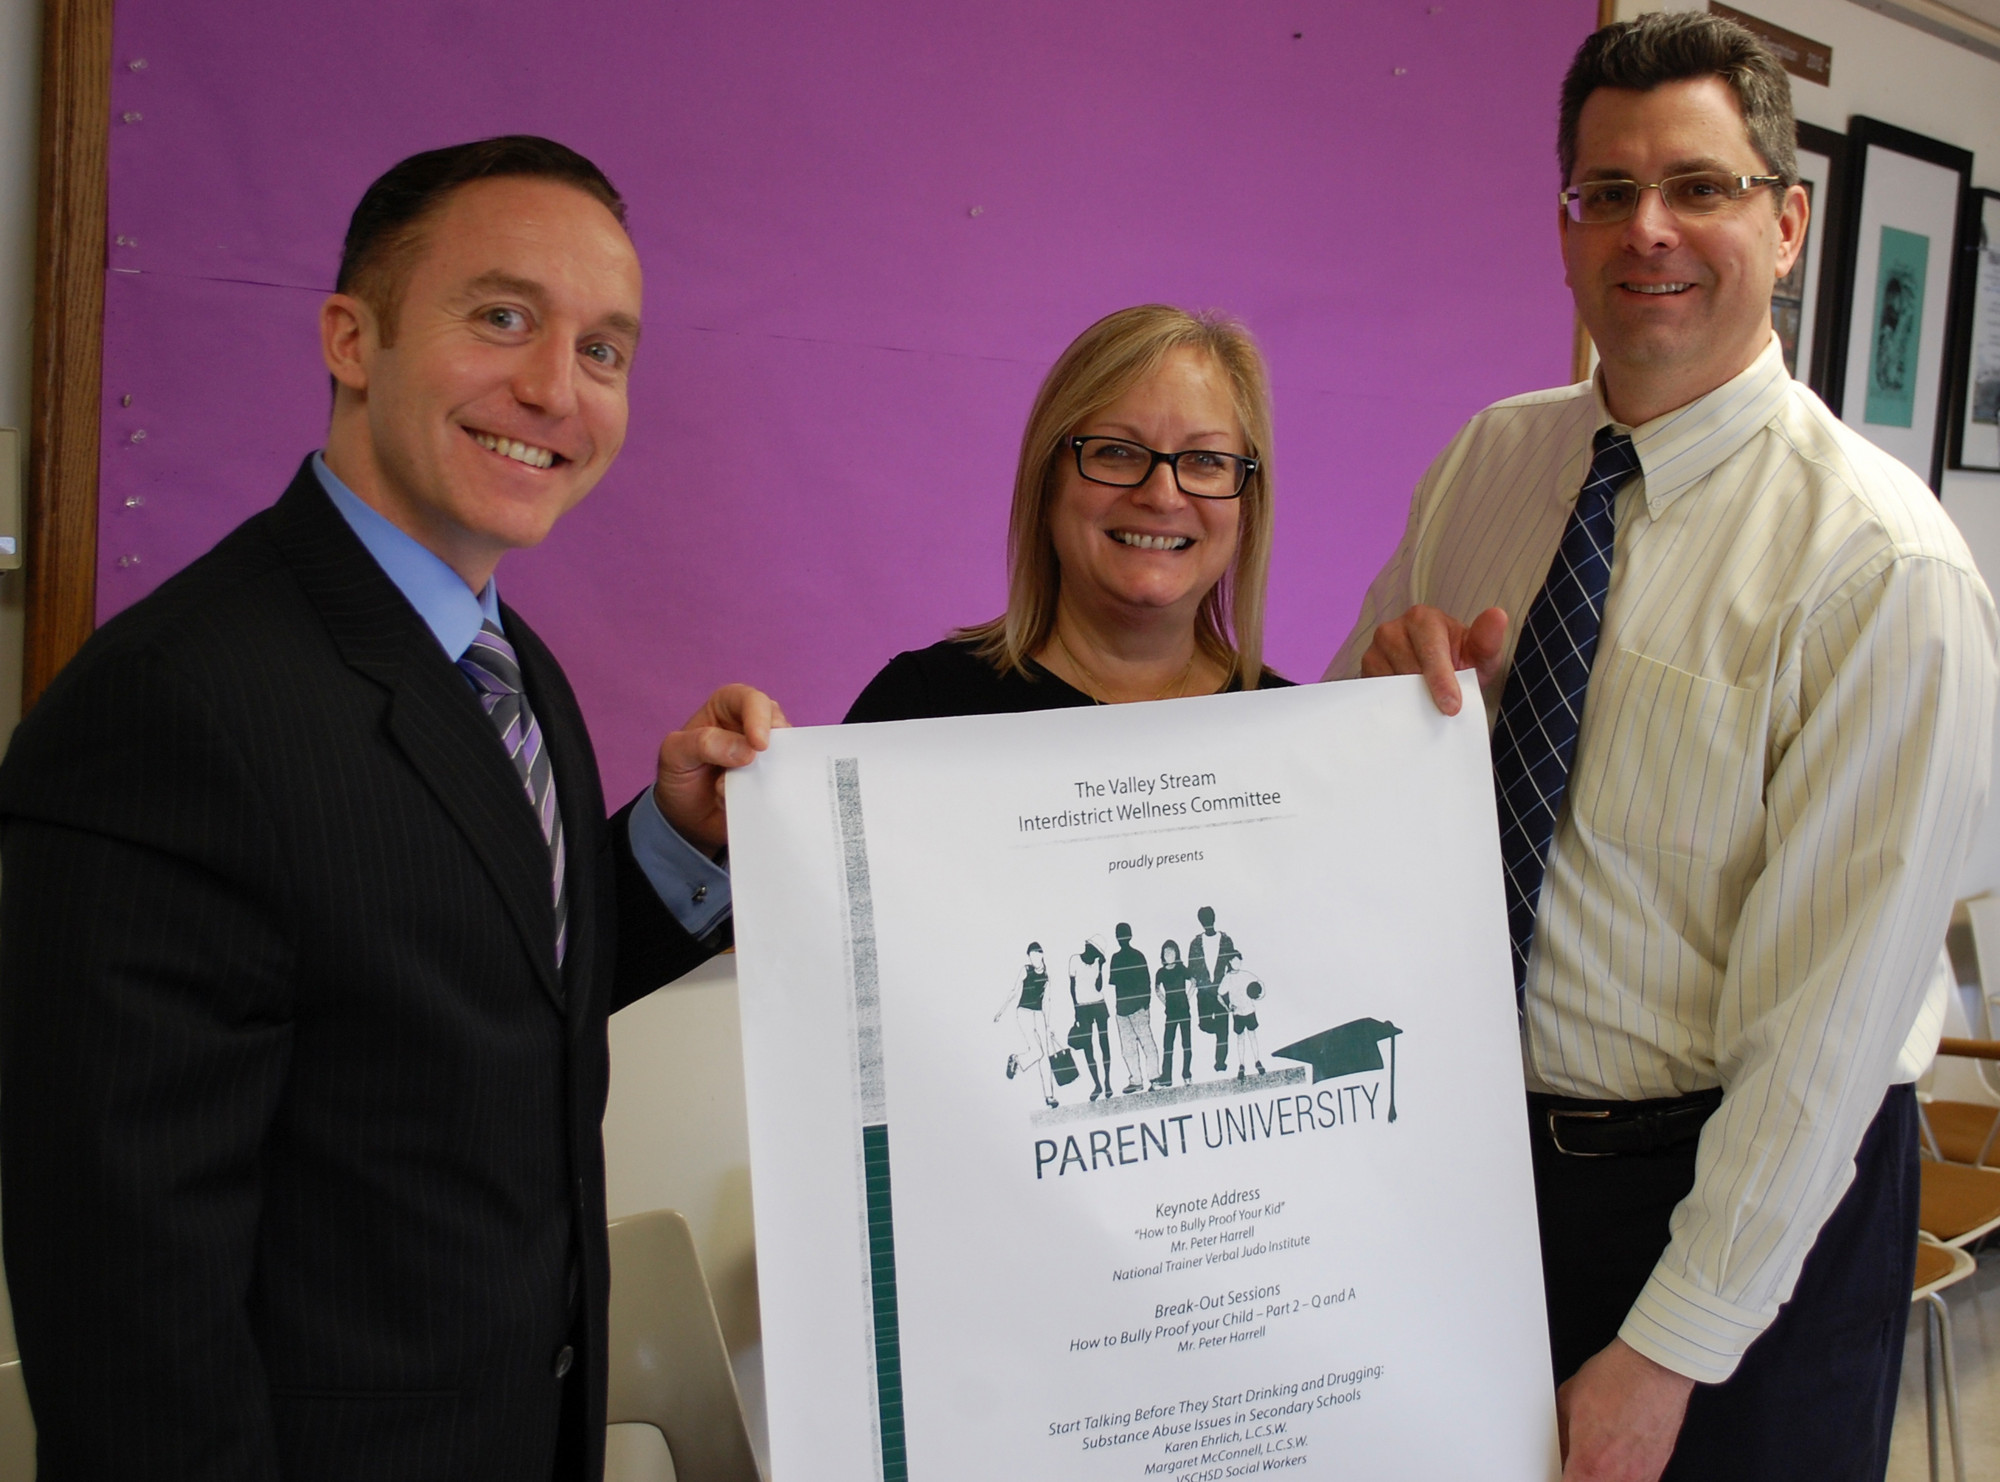 Wellness Committee members, from left, Dr. Scott Comis, Jill Vogel and Robert Milani invite parents to the April 29 program where they can learn how to communicate with their children on issues of bullying and substance abuse.